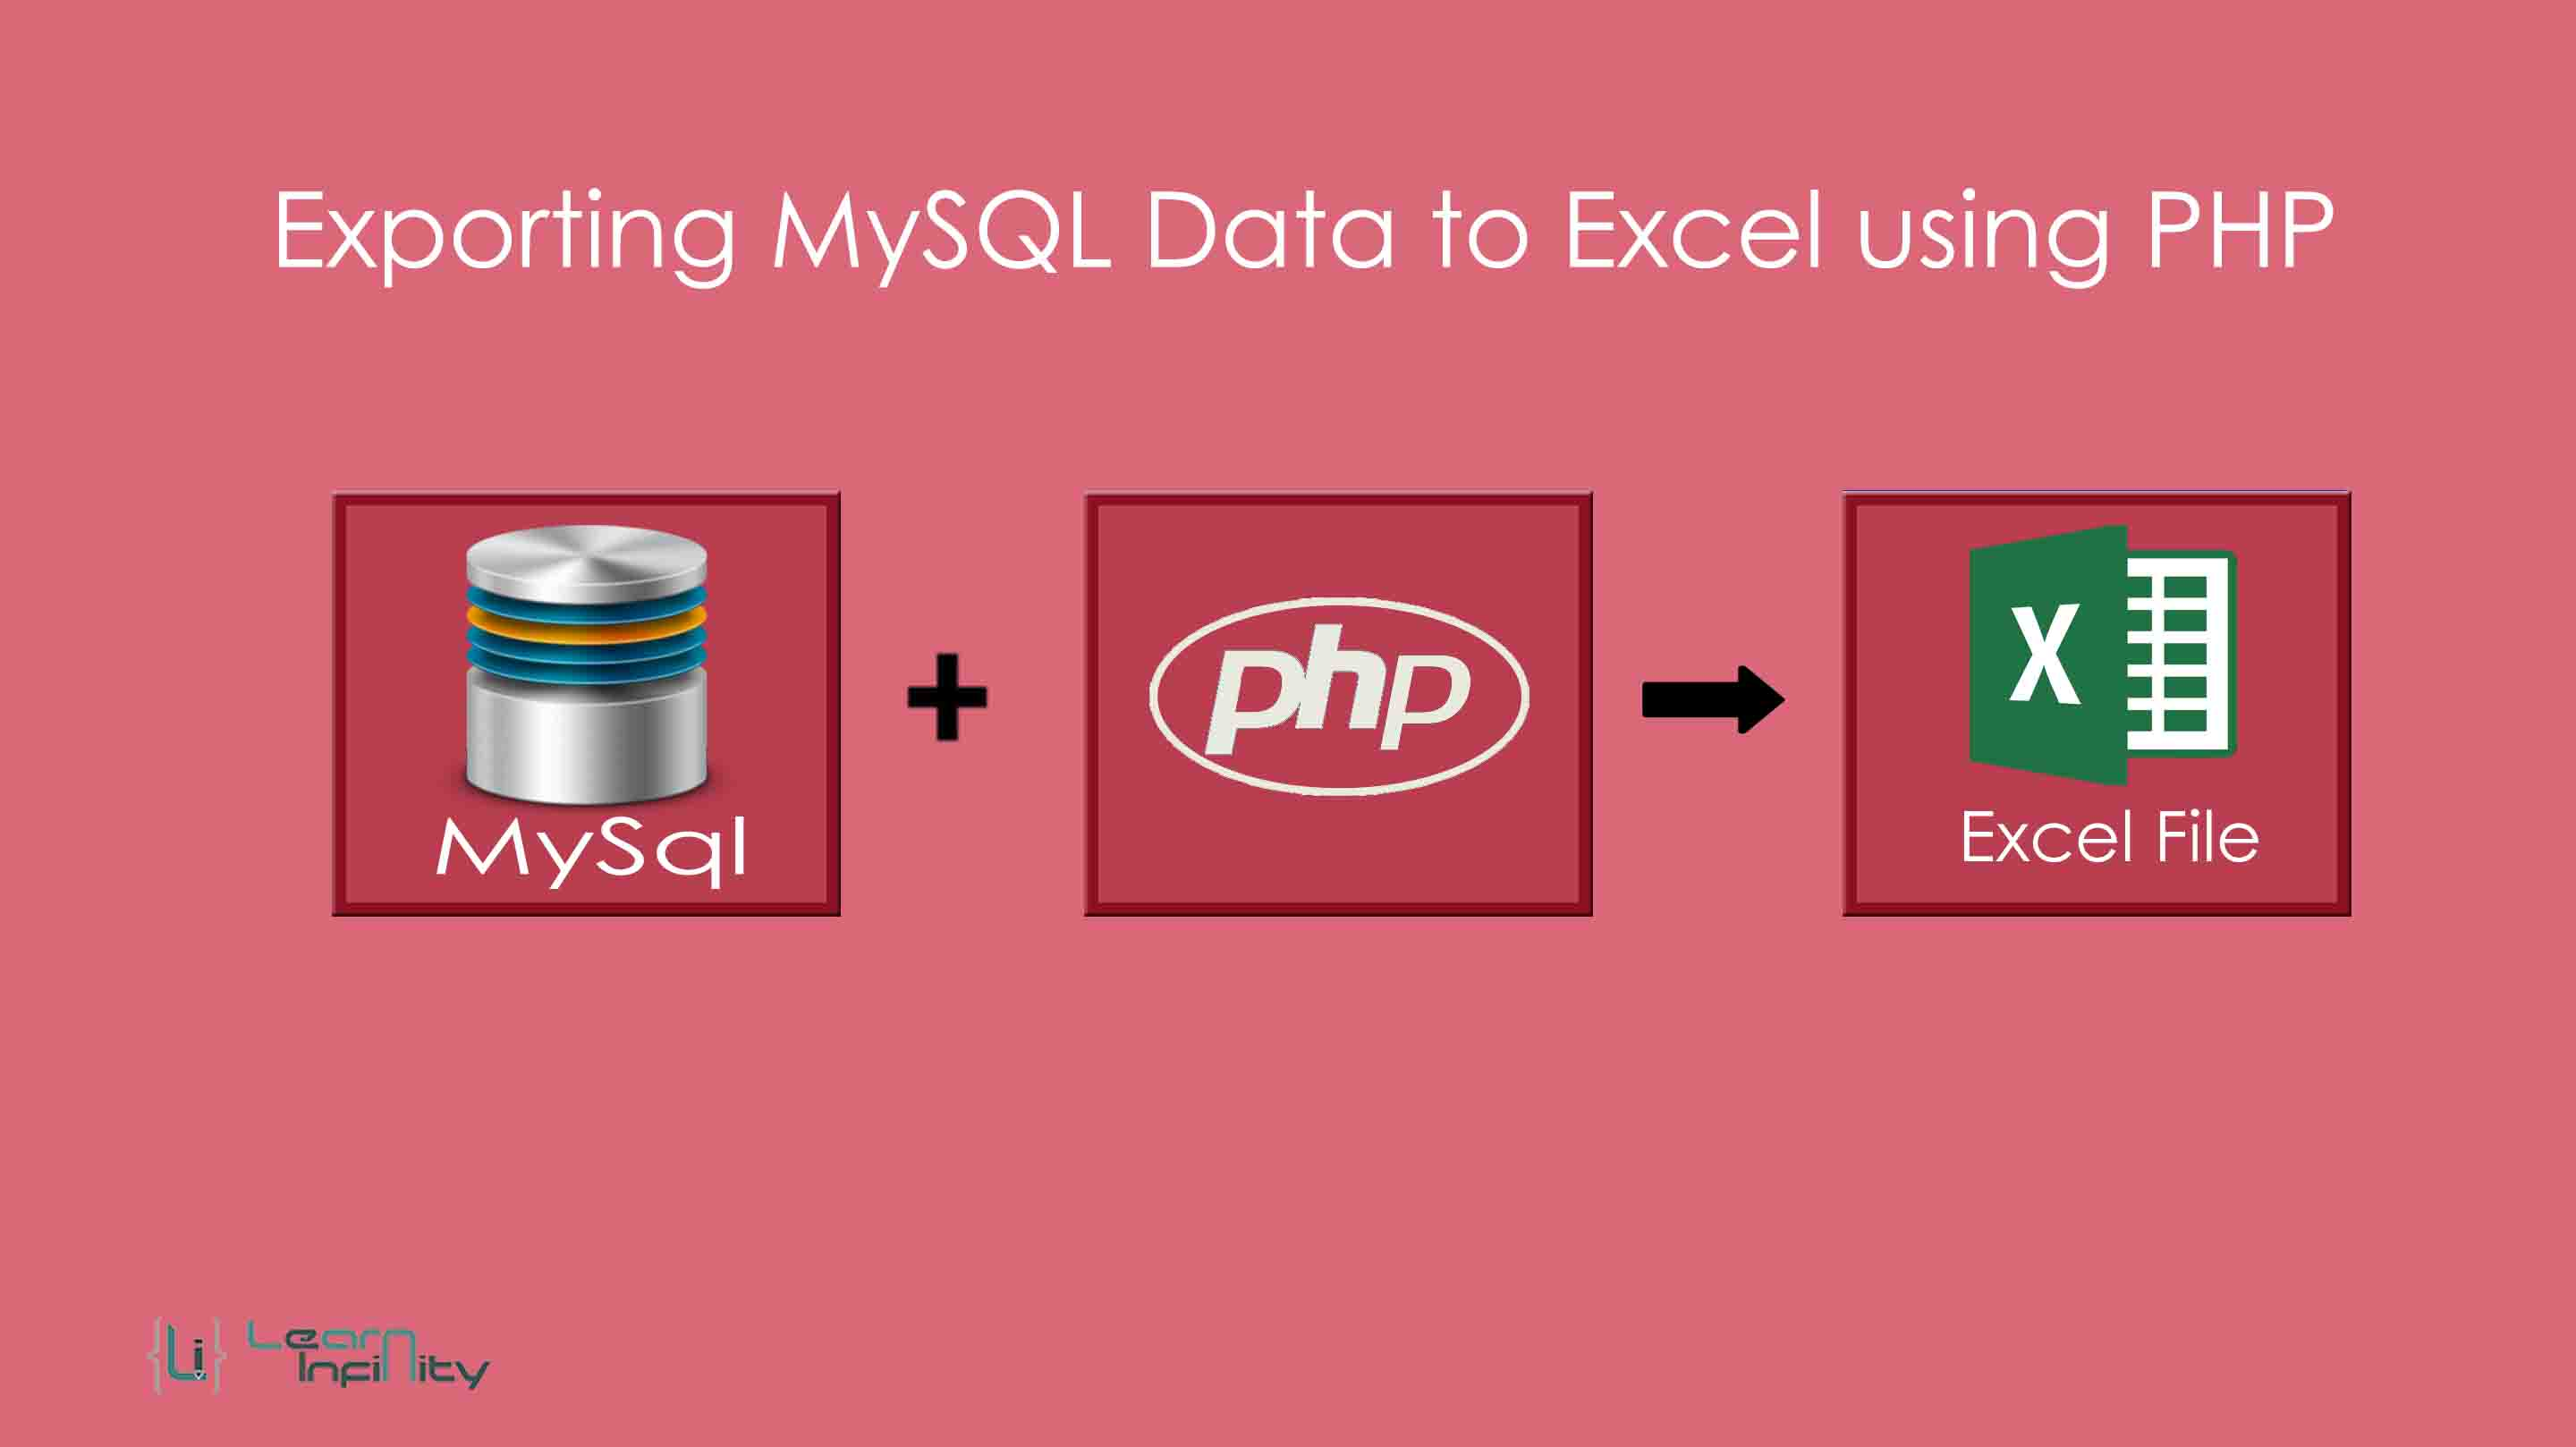 Exporting MySQL Data to Excel using PHP